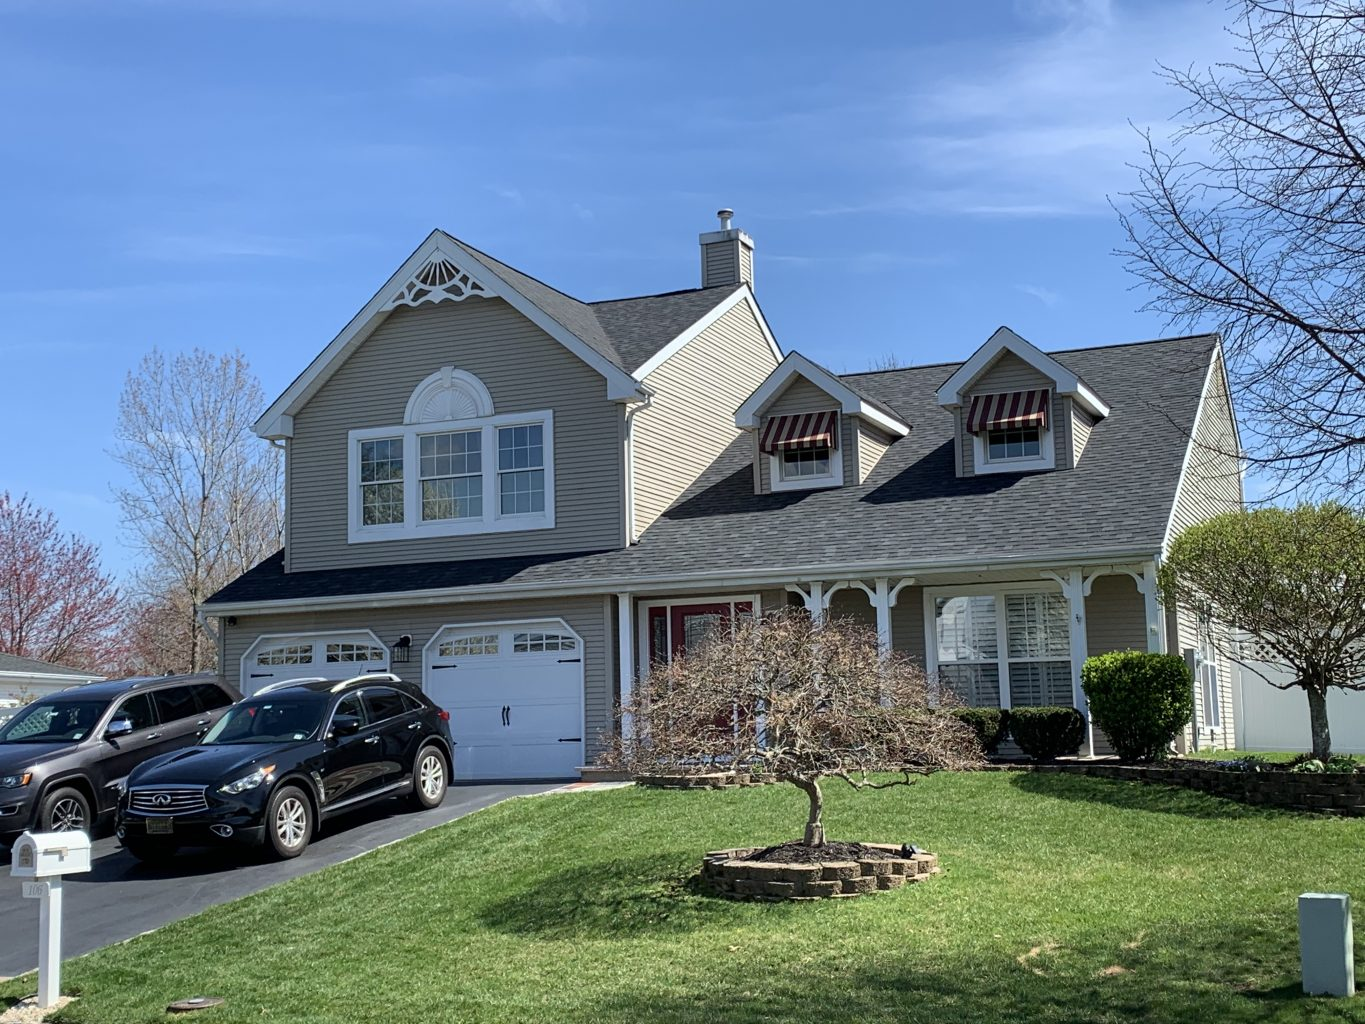 Roof Replacement in Tinton Falls, NJ